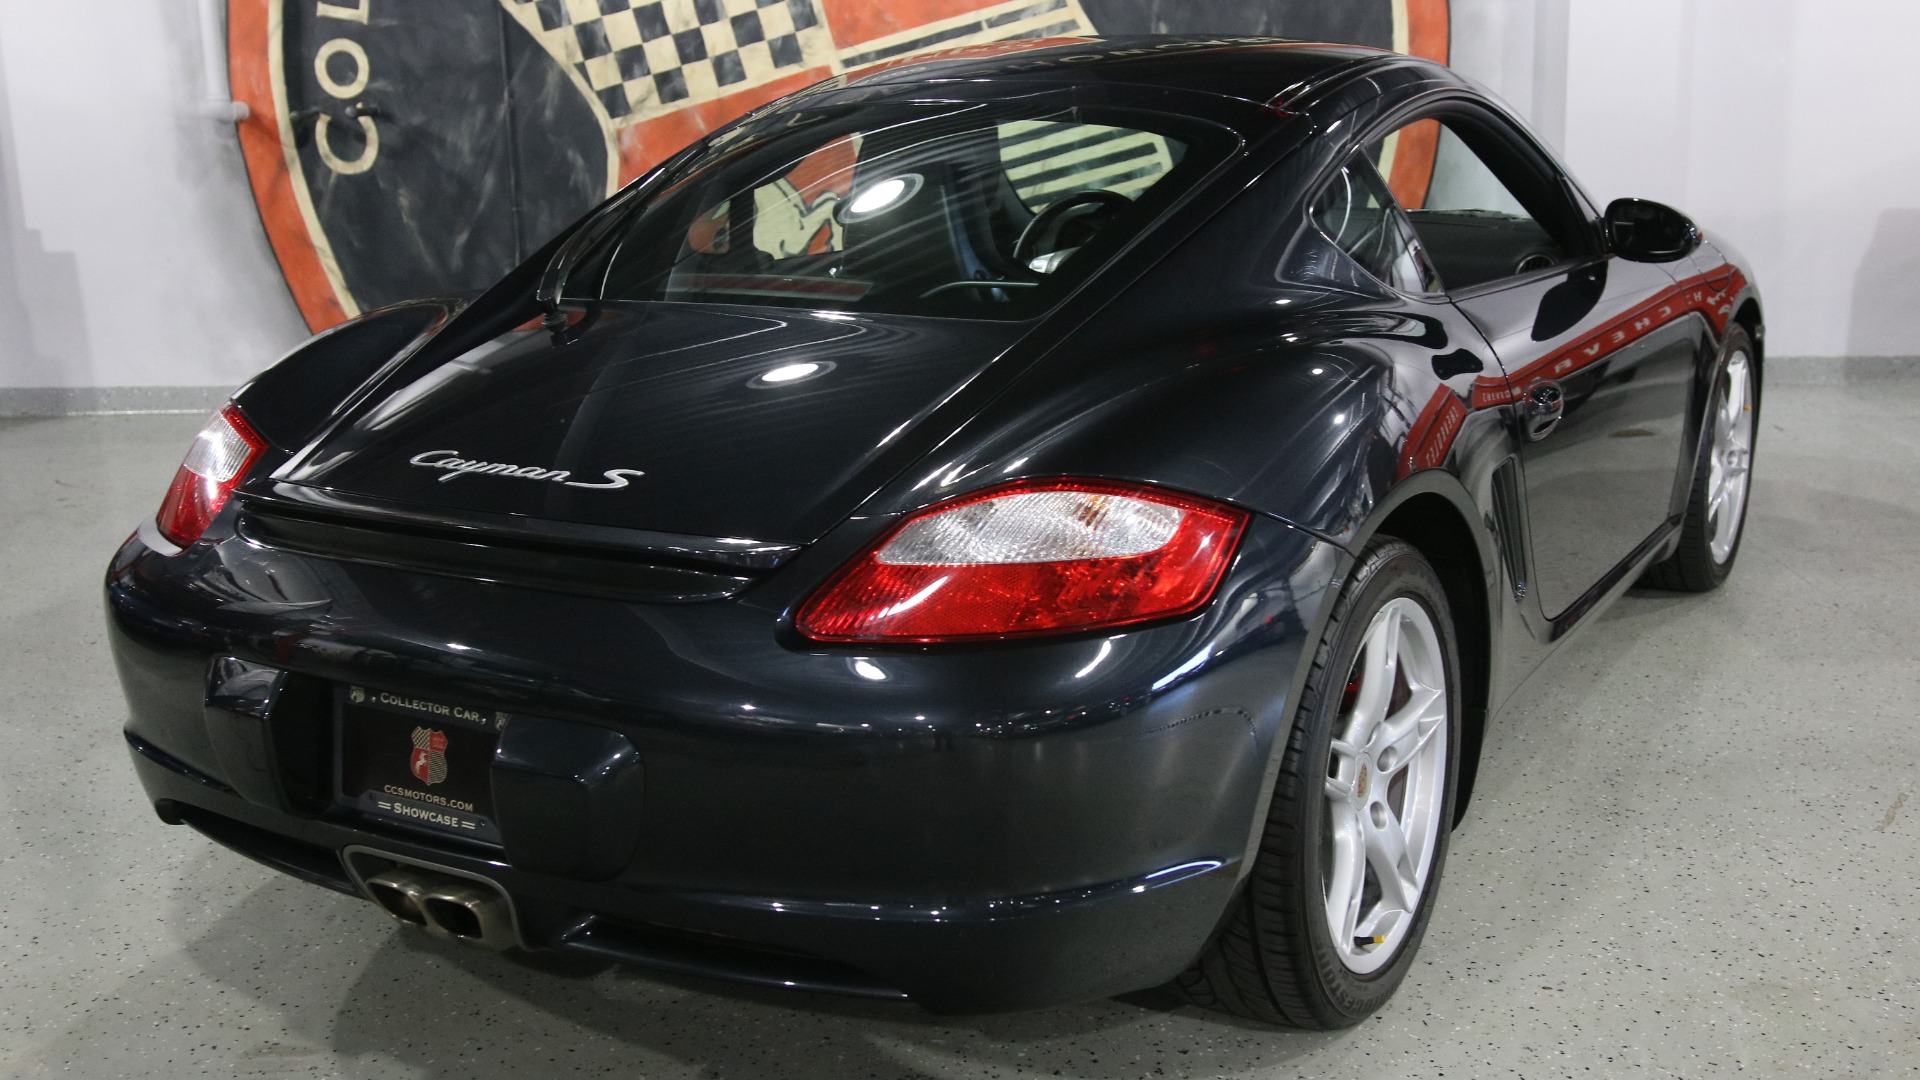 2006 porsche cayman s coupe stock # 1256 for sale near oyster bay